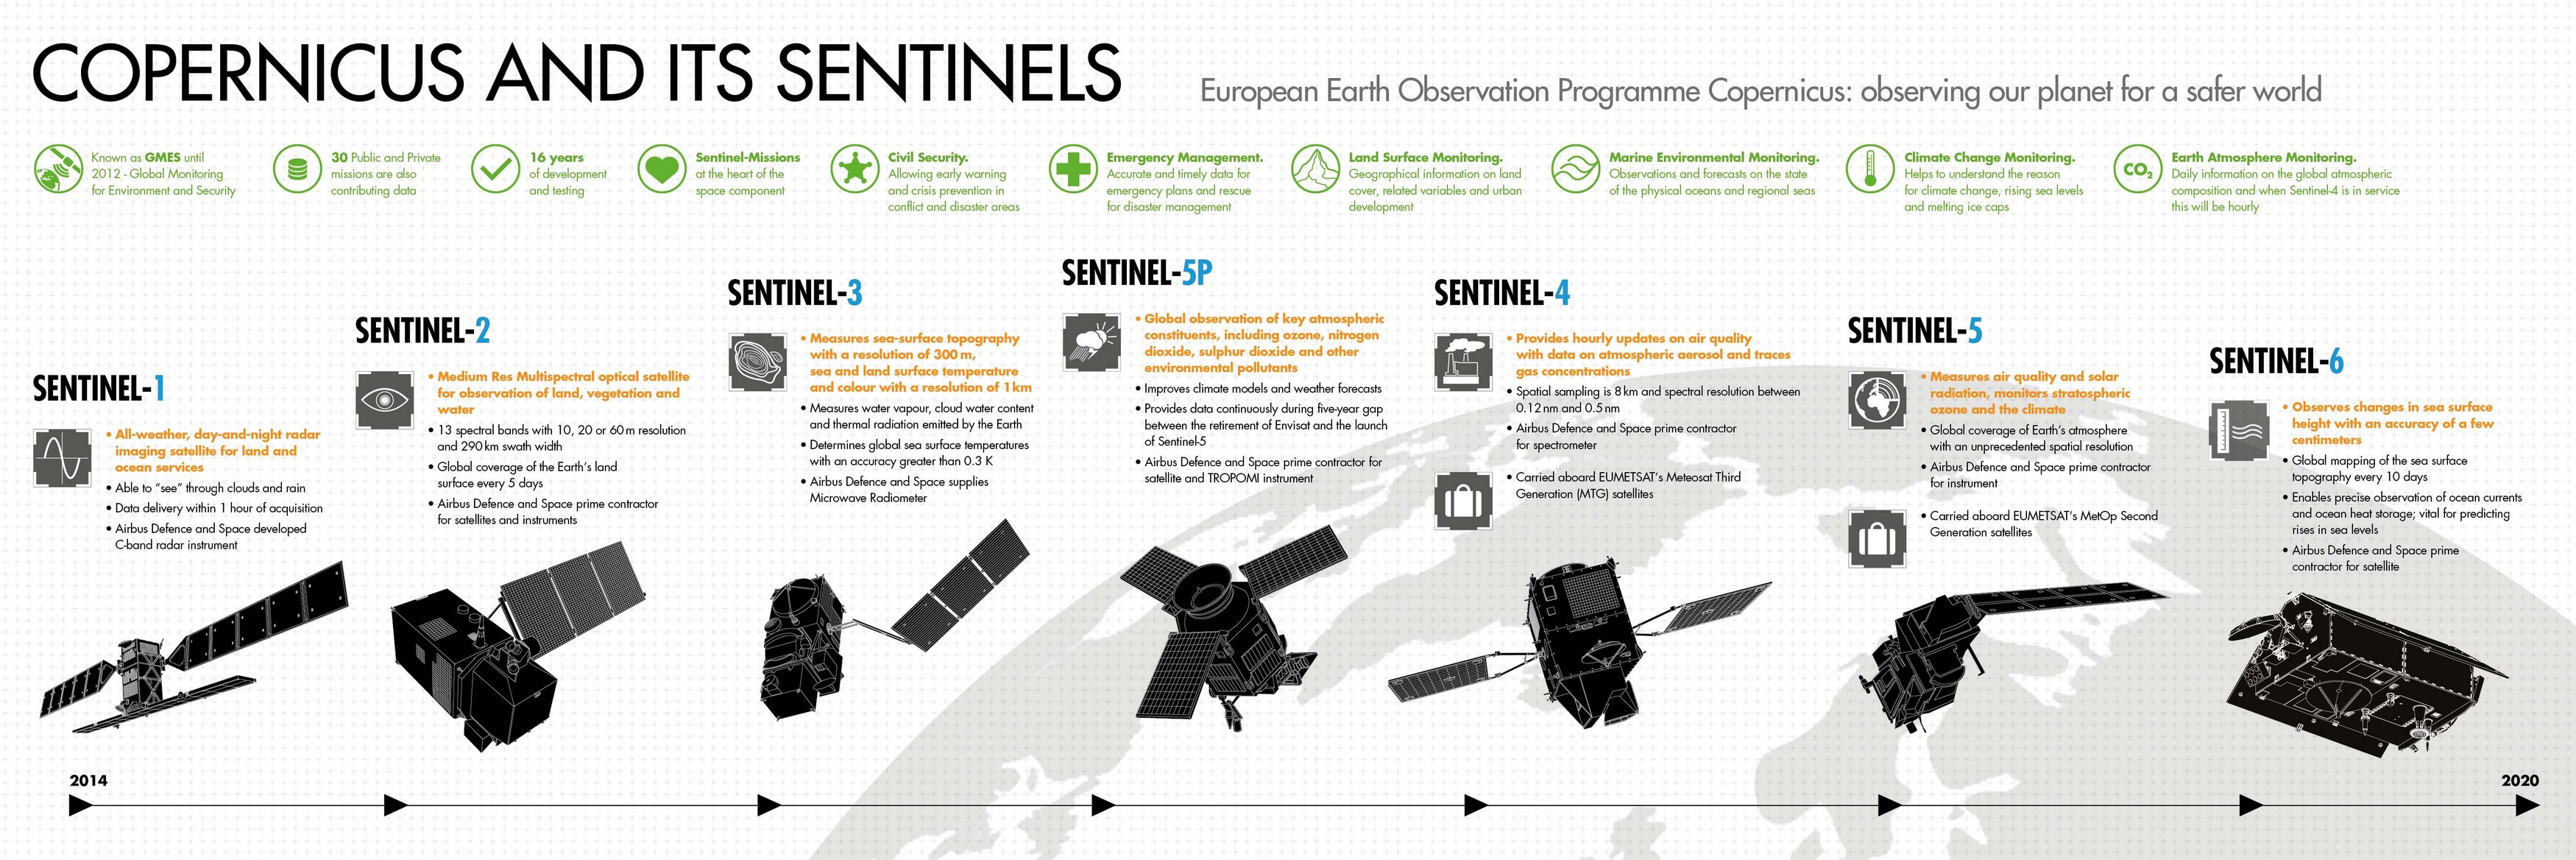 The Copernicus Sentinel series of satellites (Credit: Airbus D&S)